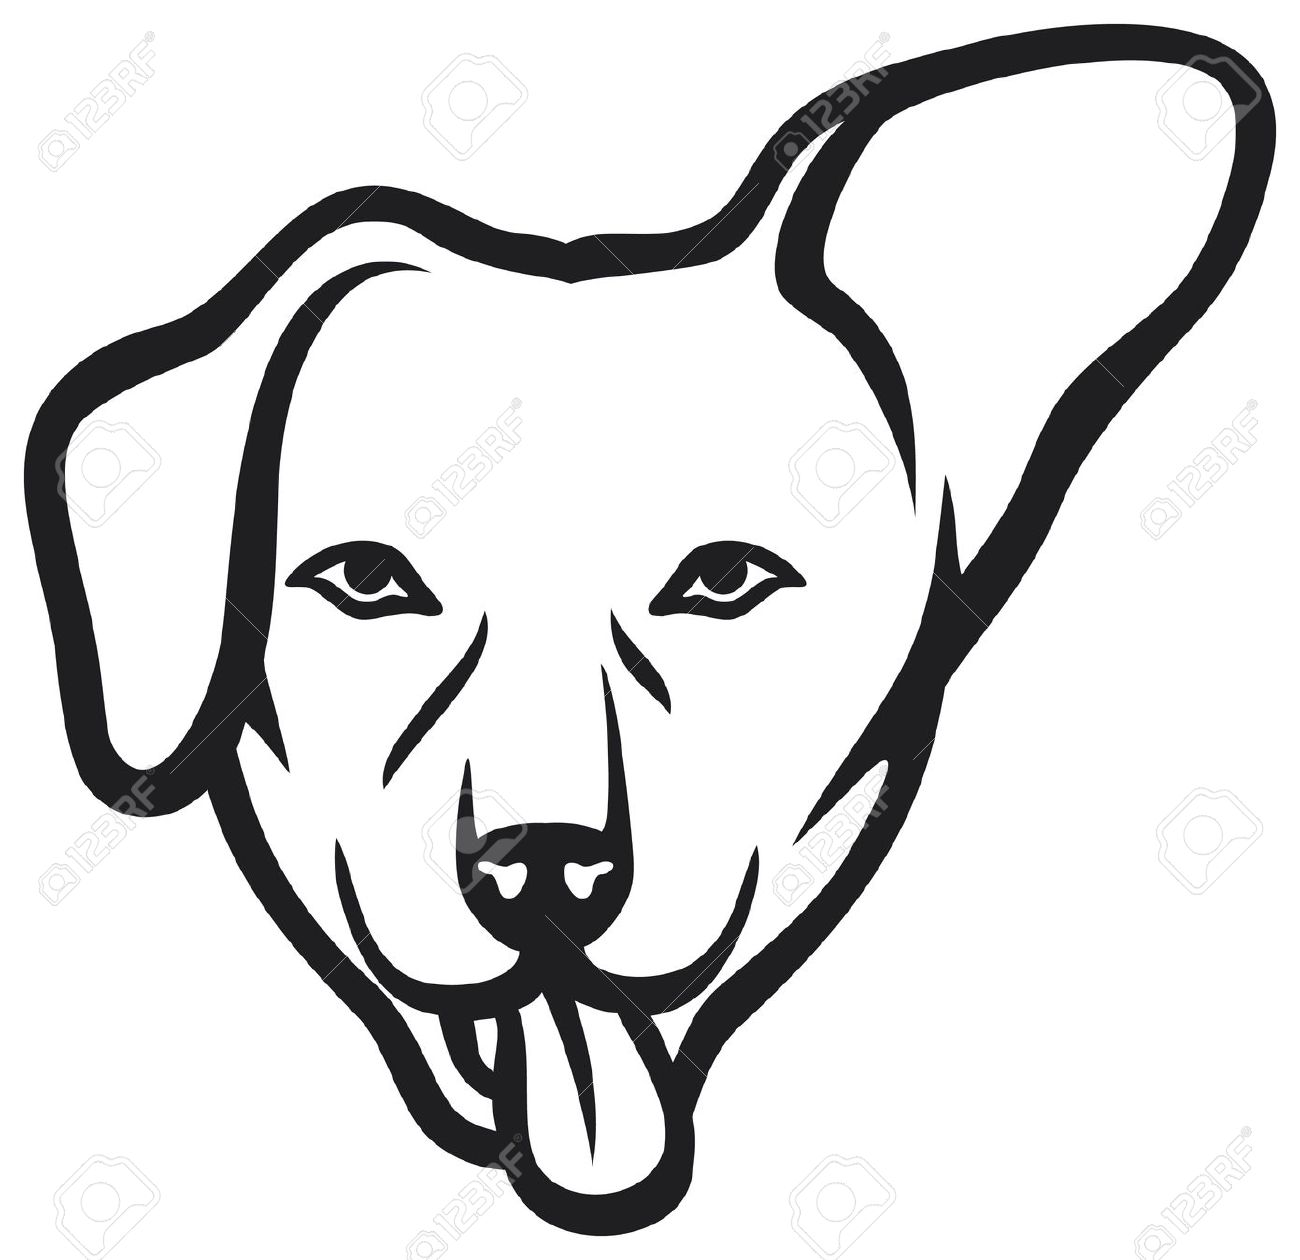 Dog Face Royalty Free Cliparts, Vectors, And Stock Illustration.